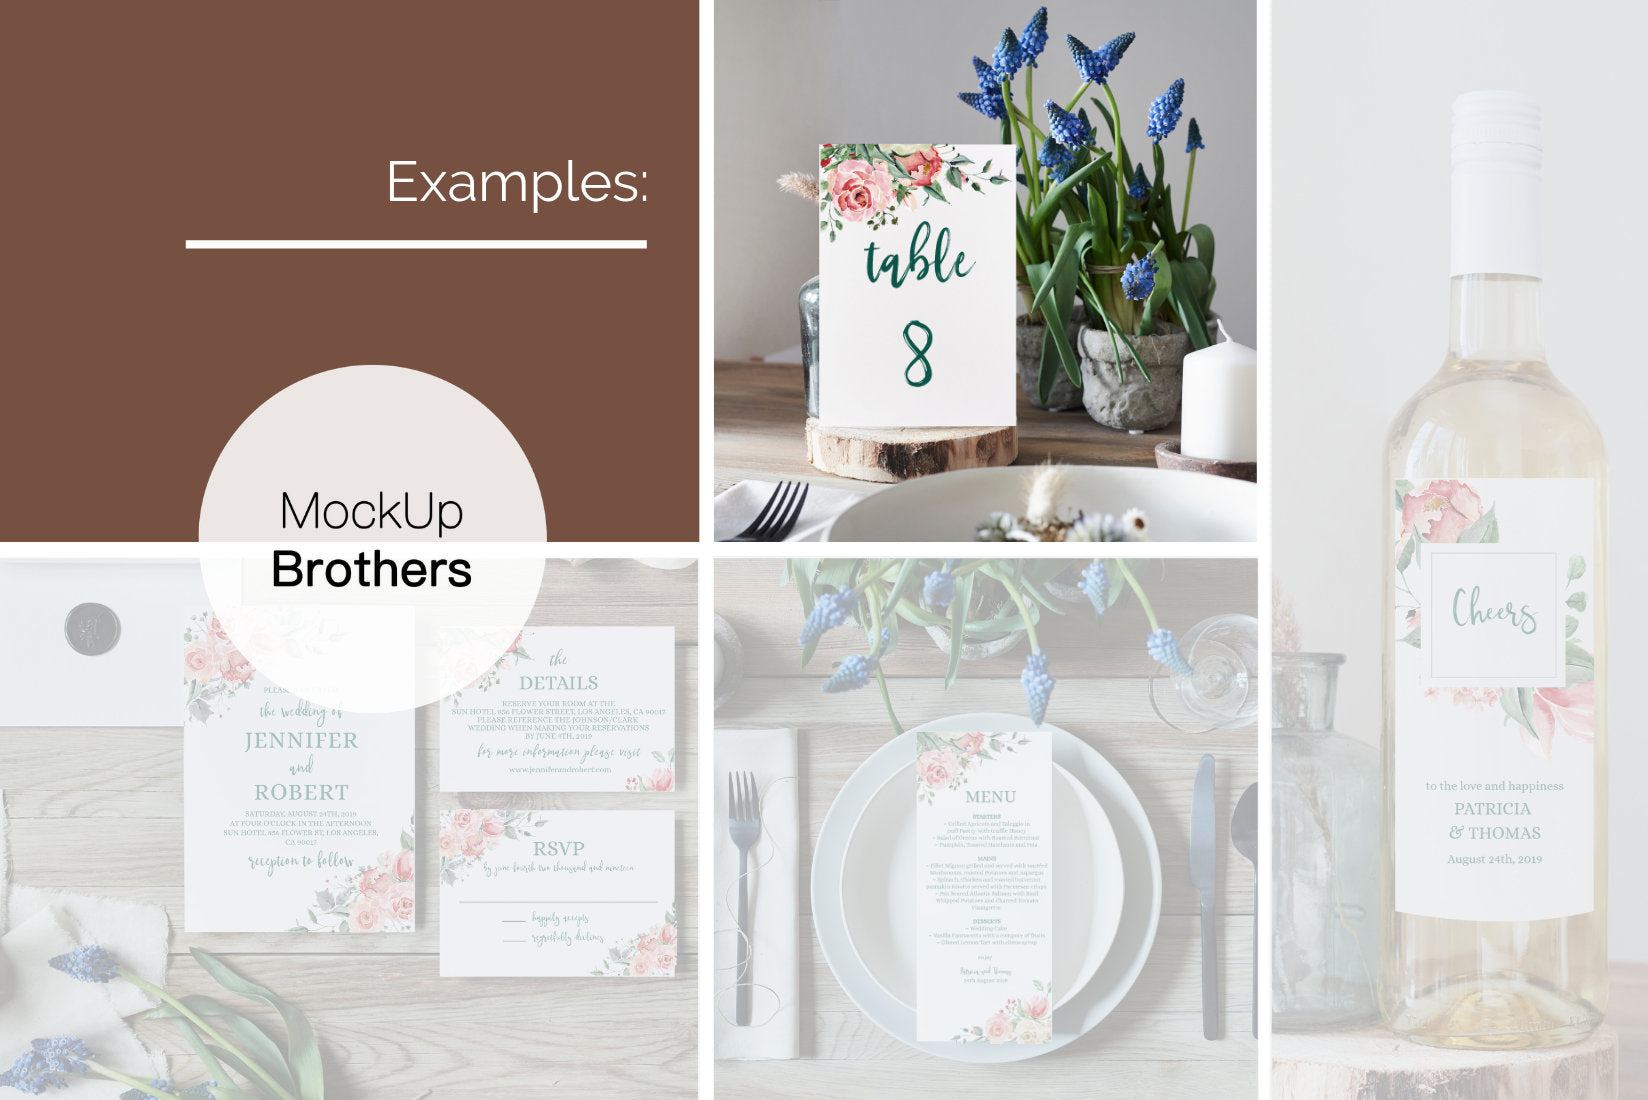 Wedding table number mockup W07_18